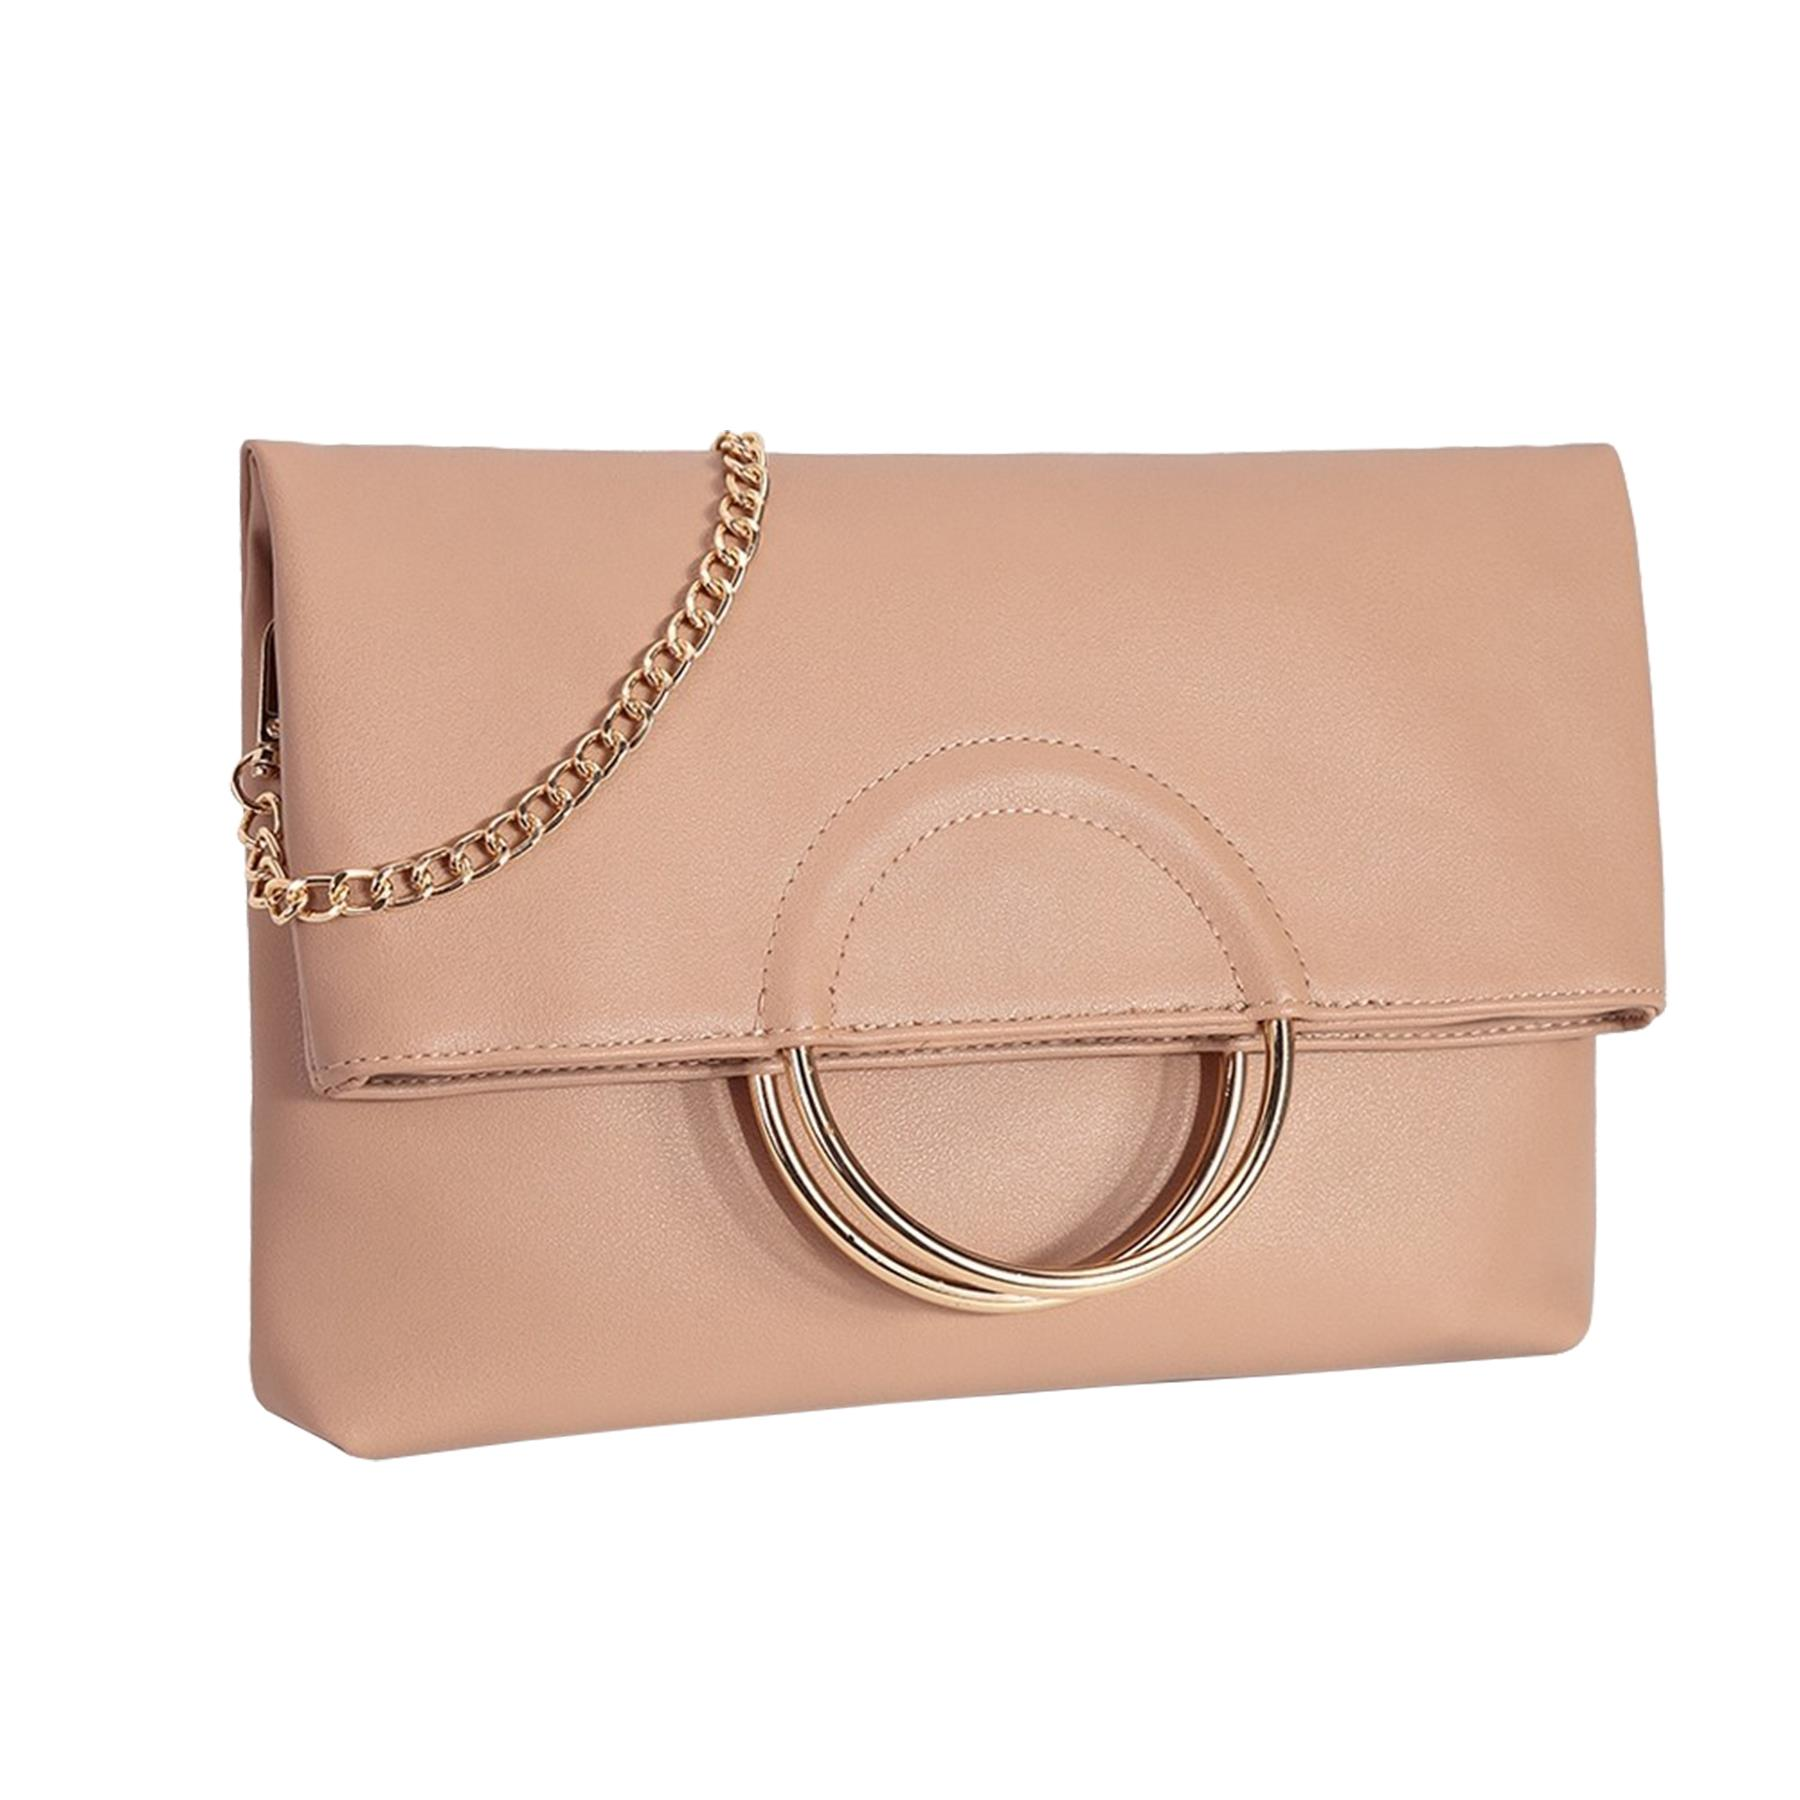 New-Women-s-Metallic-Ring-Top-Handles-Faux-Leather-Evening-Clutch-Bag thumbnail 12